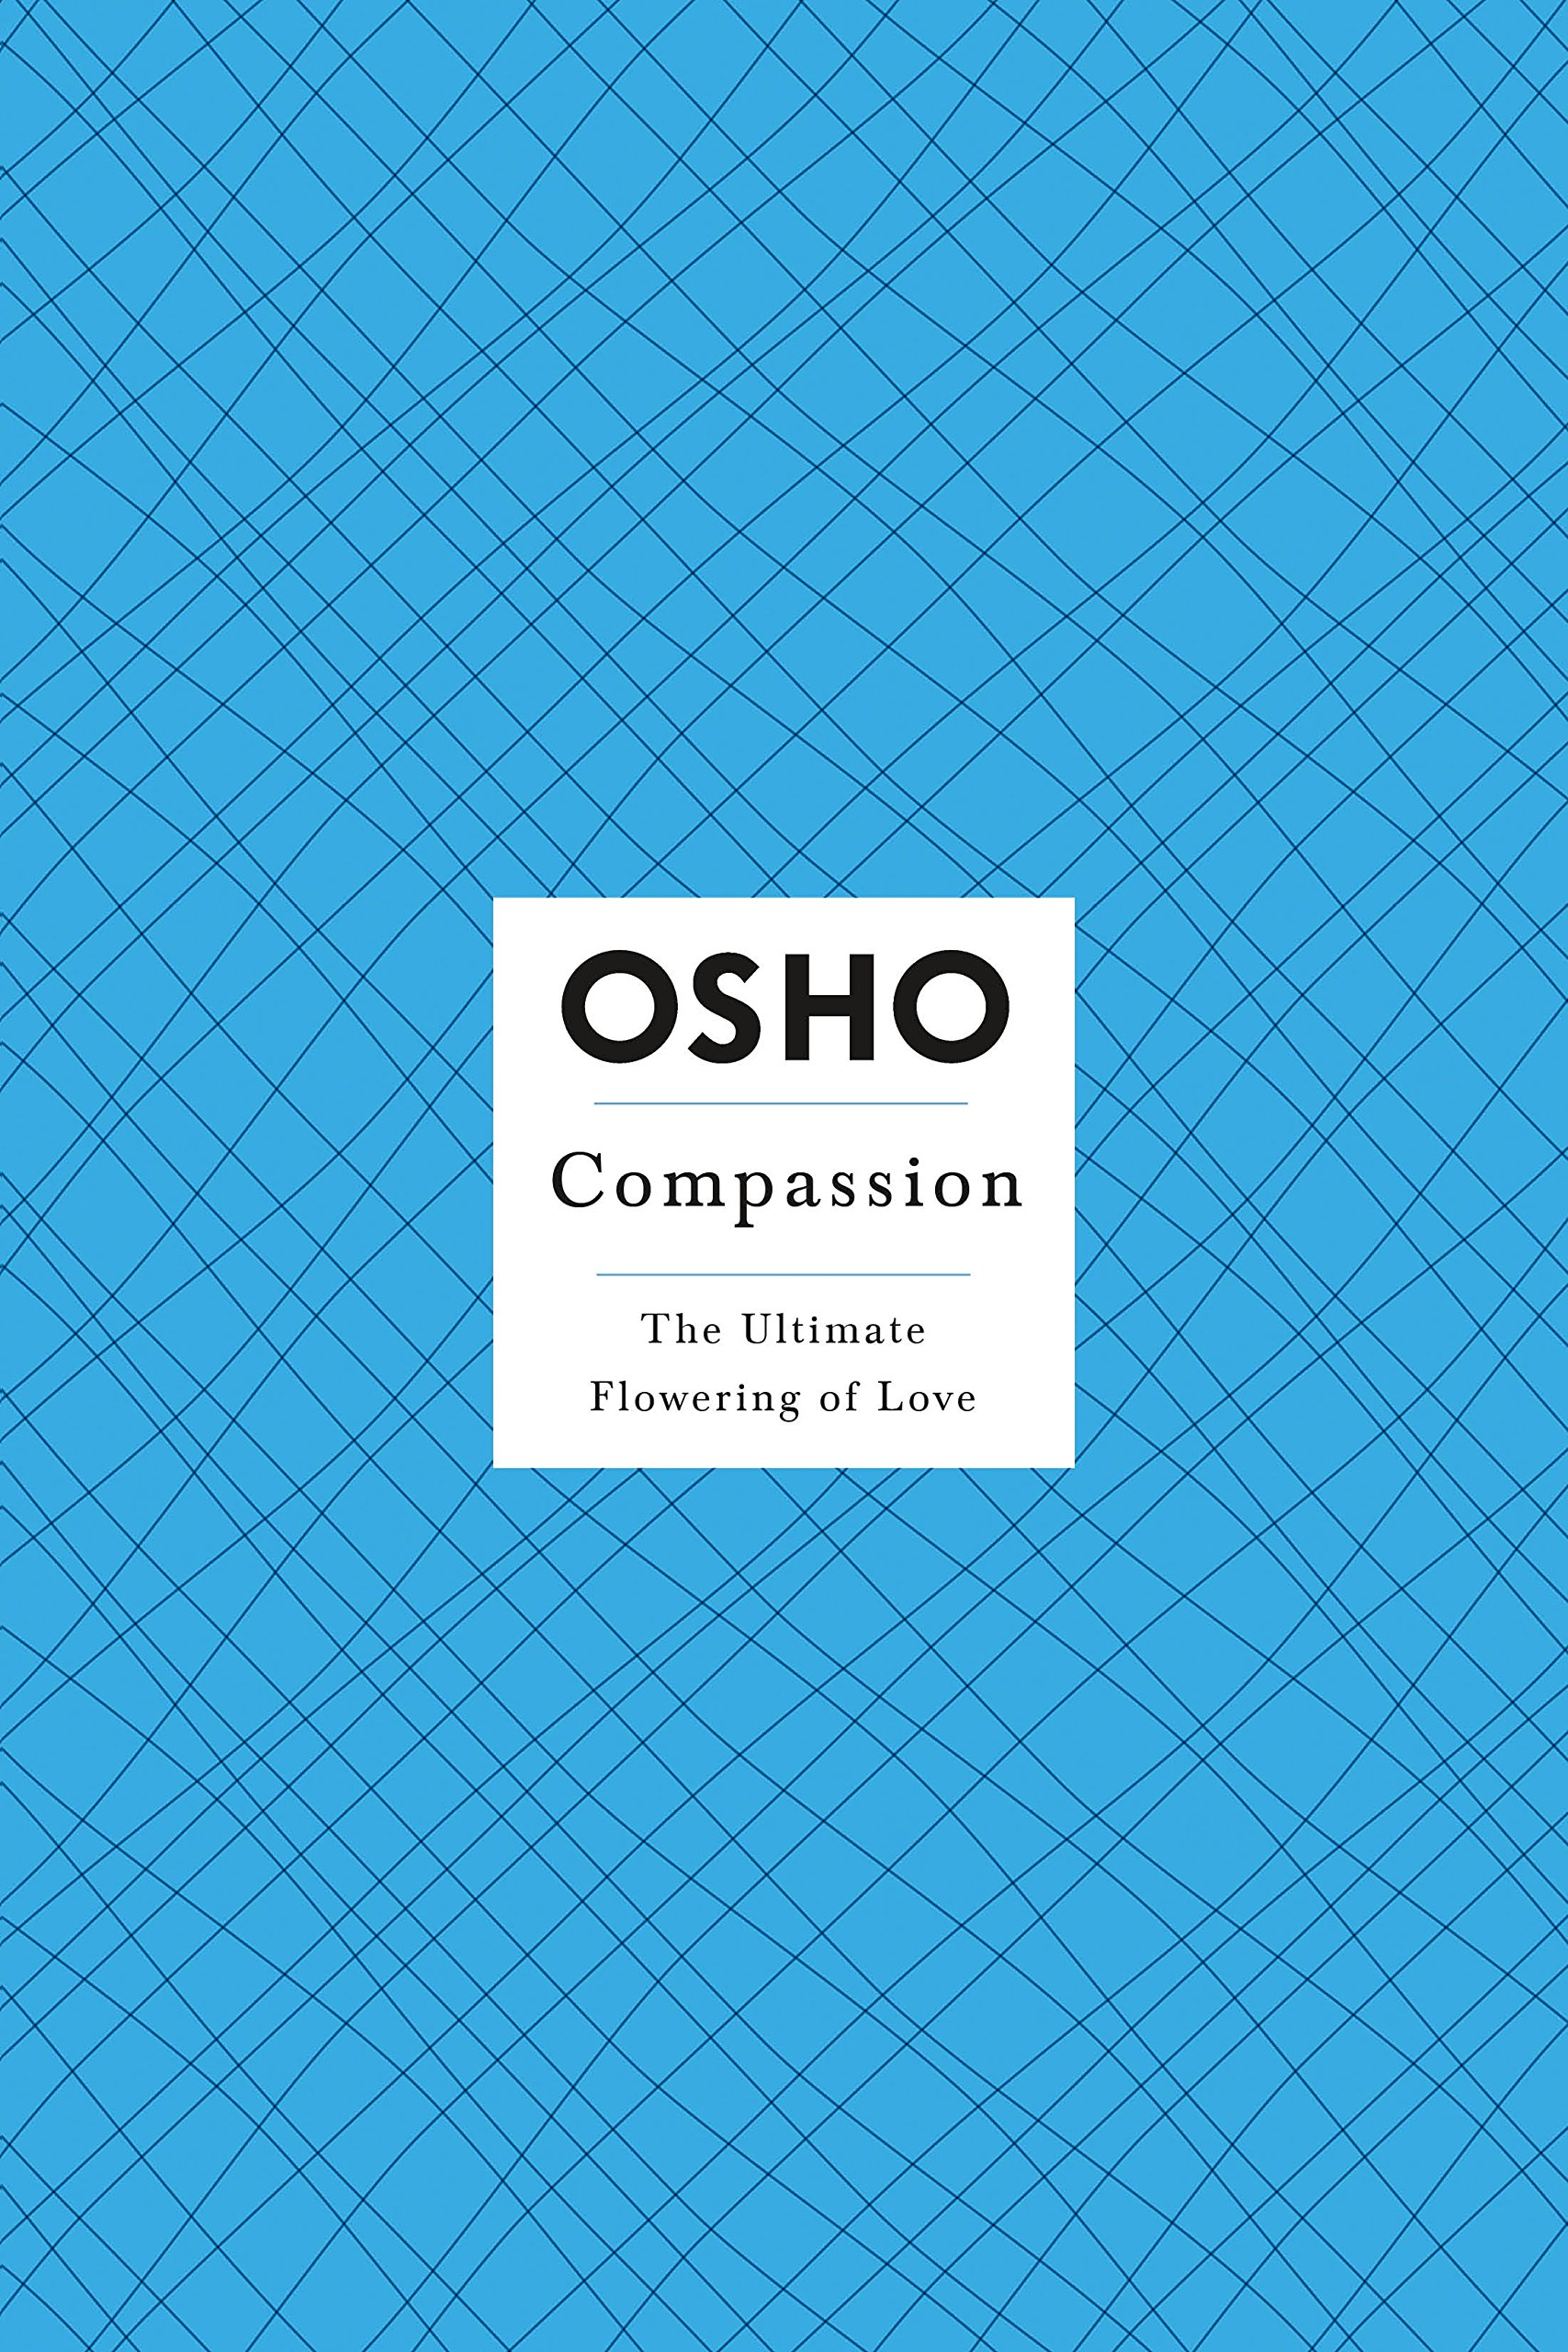 Amazon.com: OSHO Compassion: The Ultimate Flowering of Love (Osho: Insights  for a New Way of Living) (9780312365684): Osho: Books